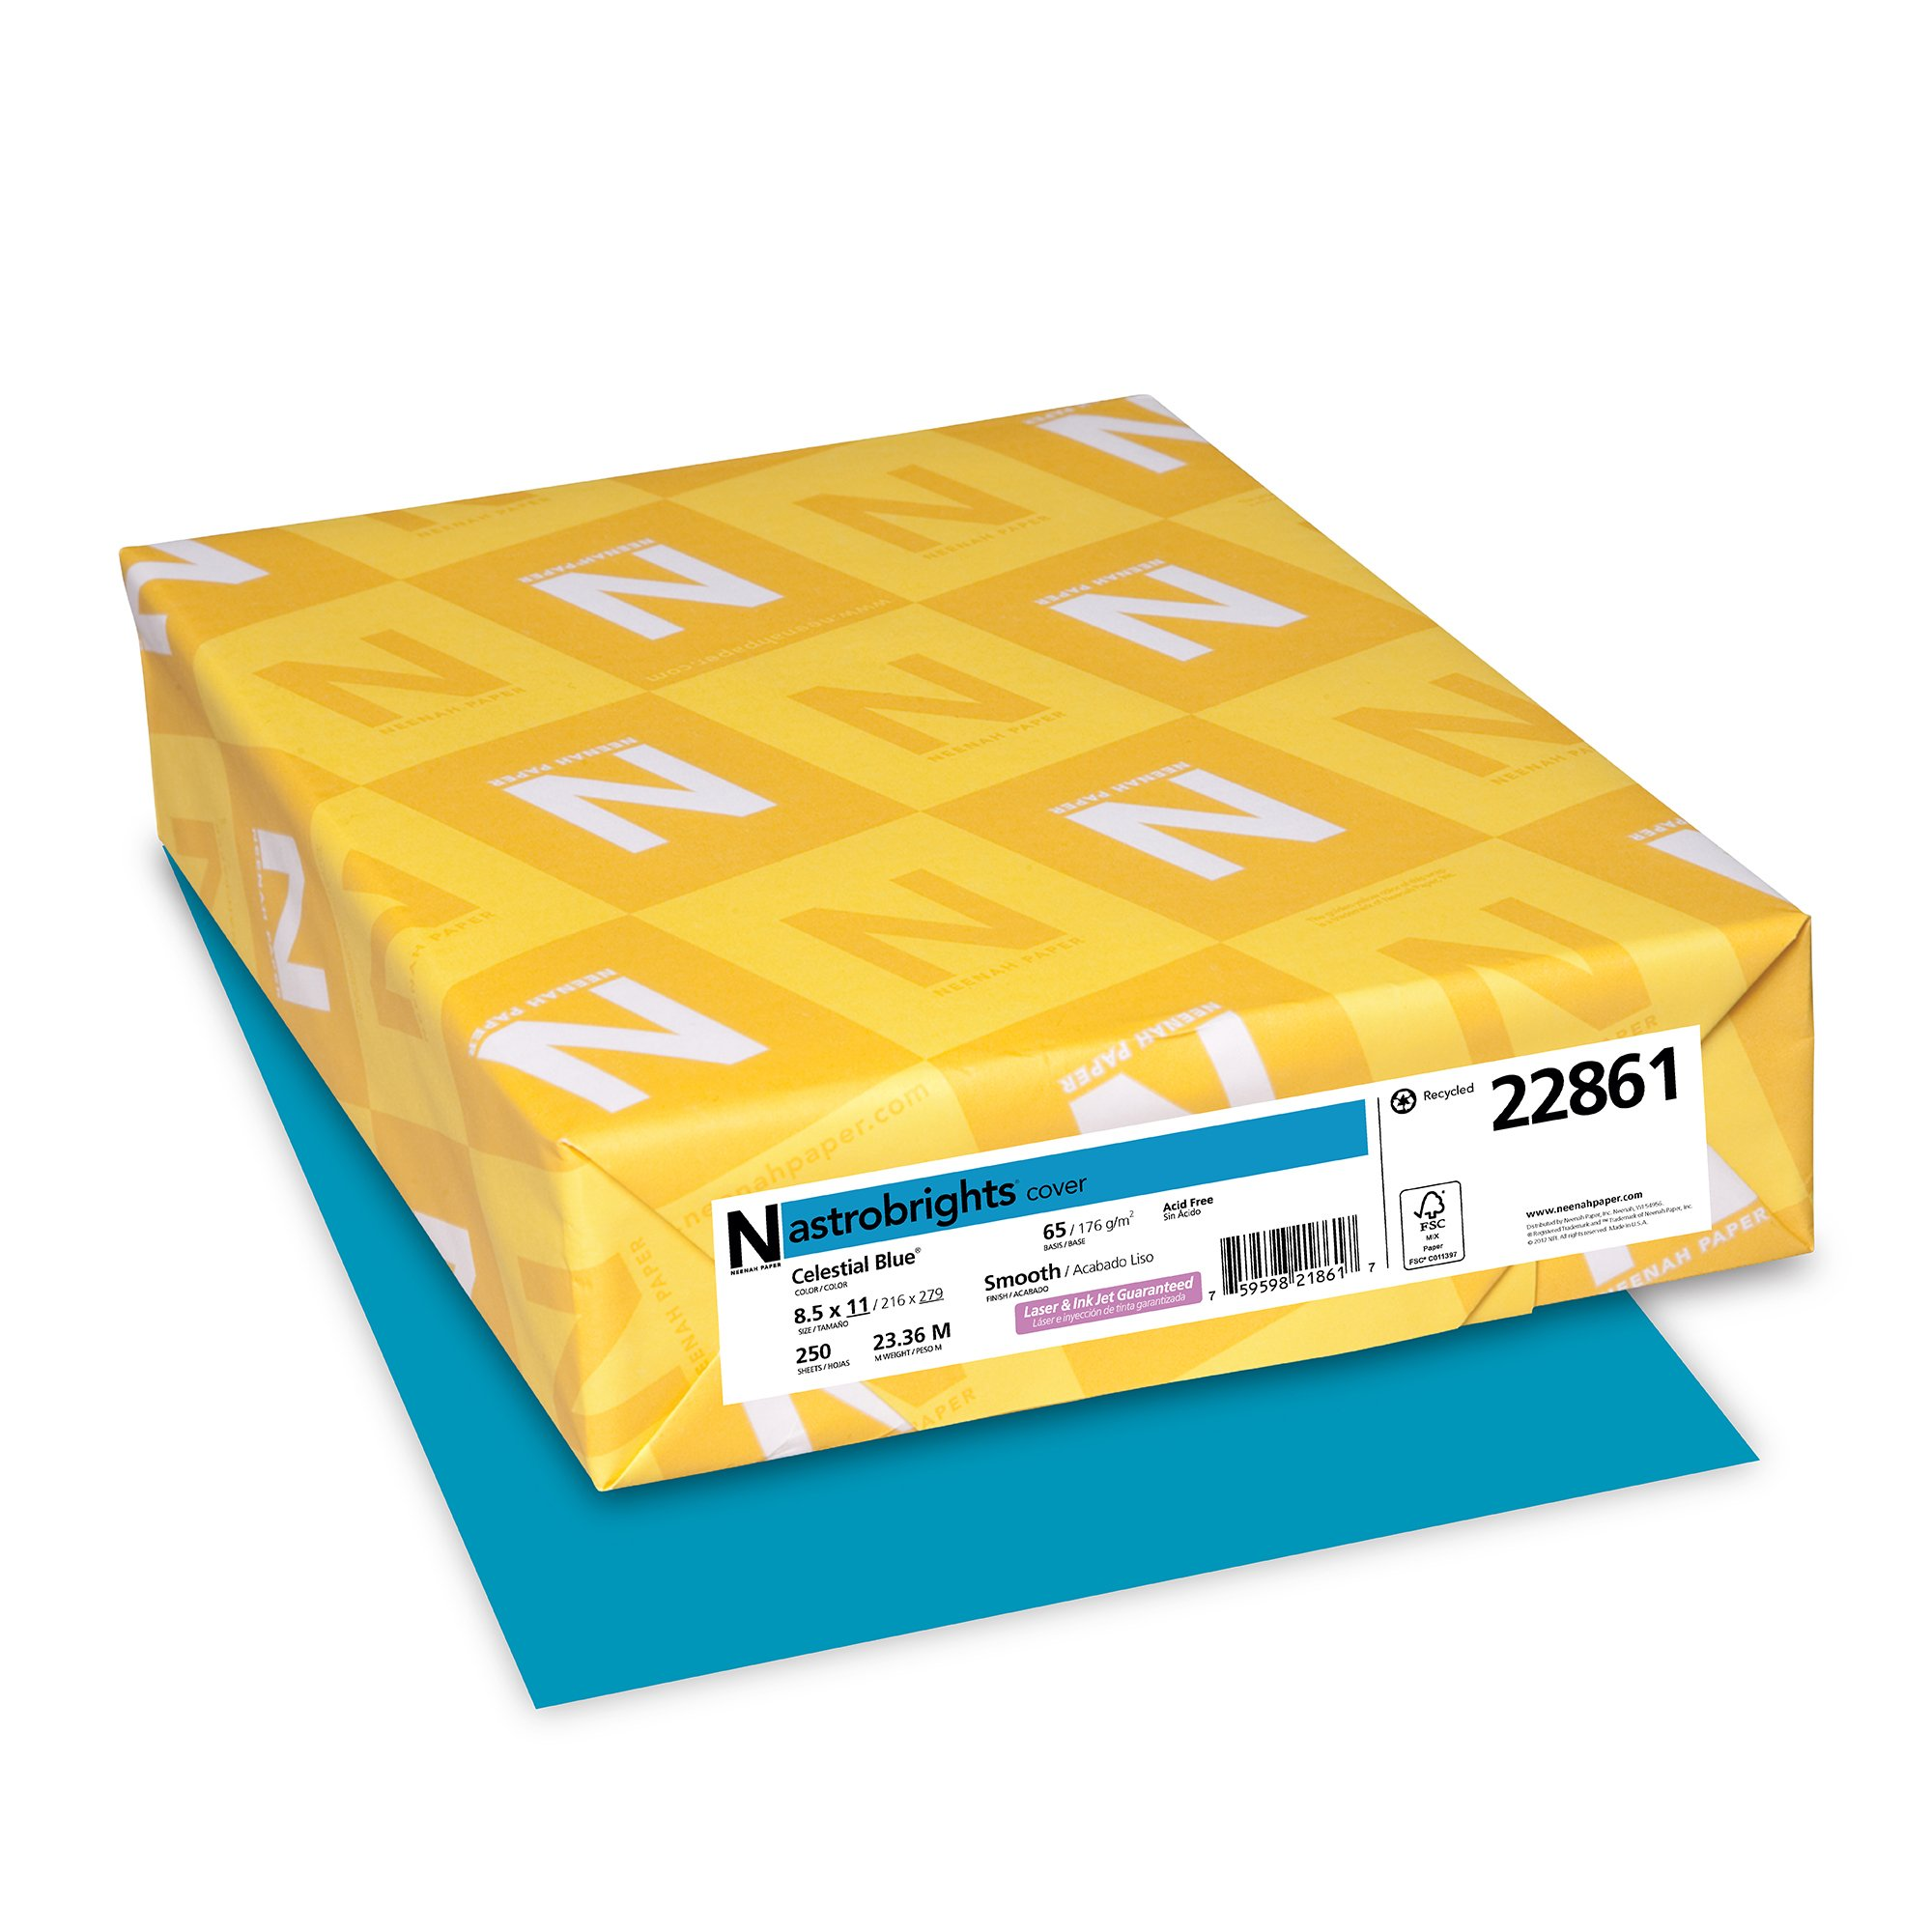 "Neenah Astrobrights Colored Cardstock, 8.5"" x 11"", 65 lb/176 GSM, Celestial Blue, 250 Sheets (22861)"